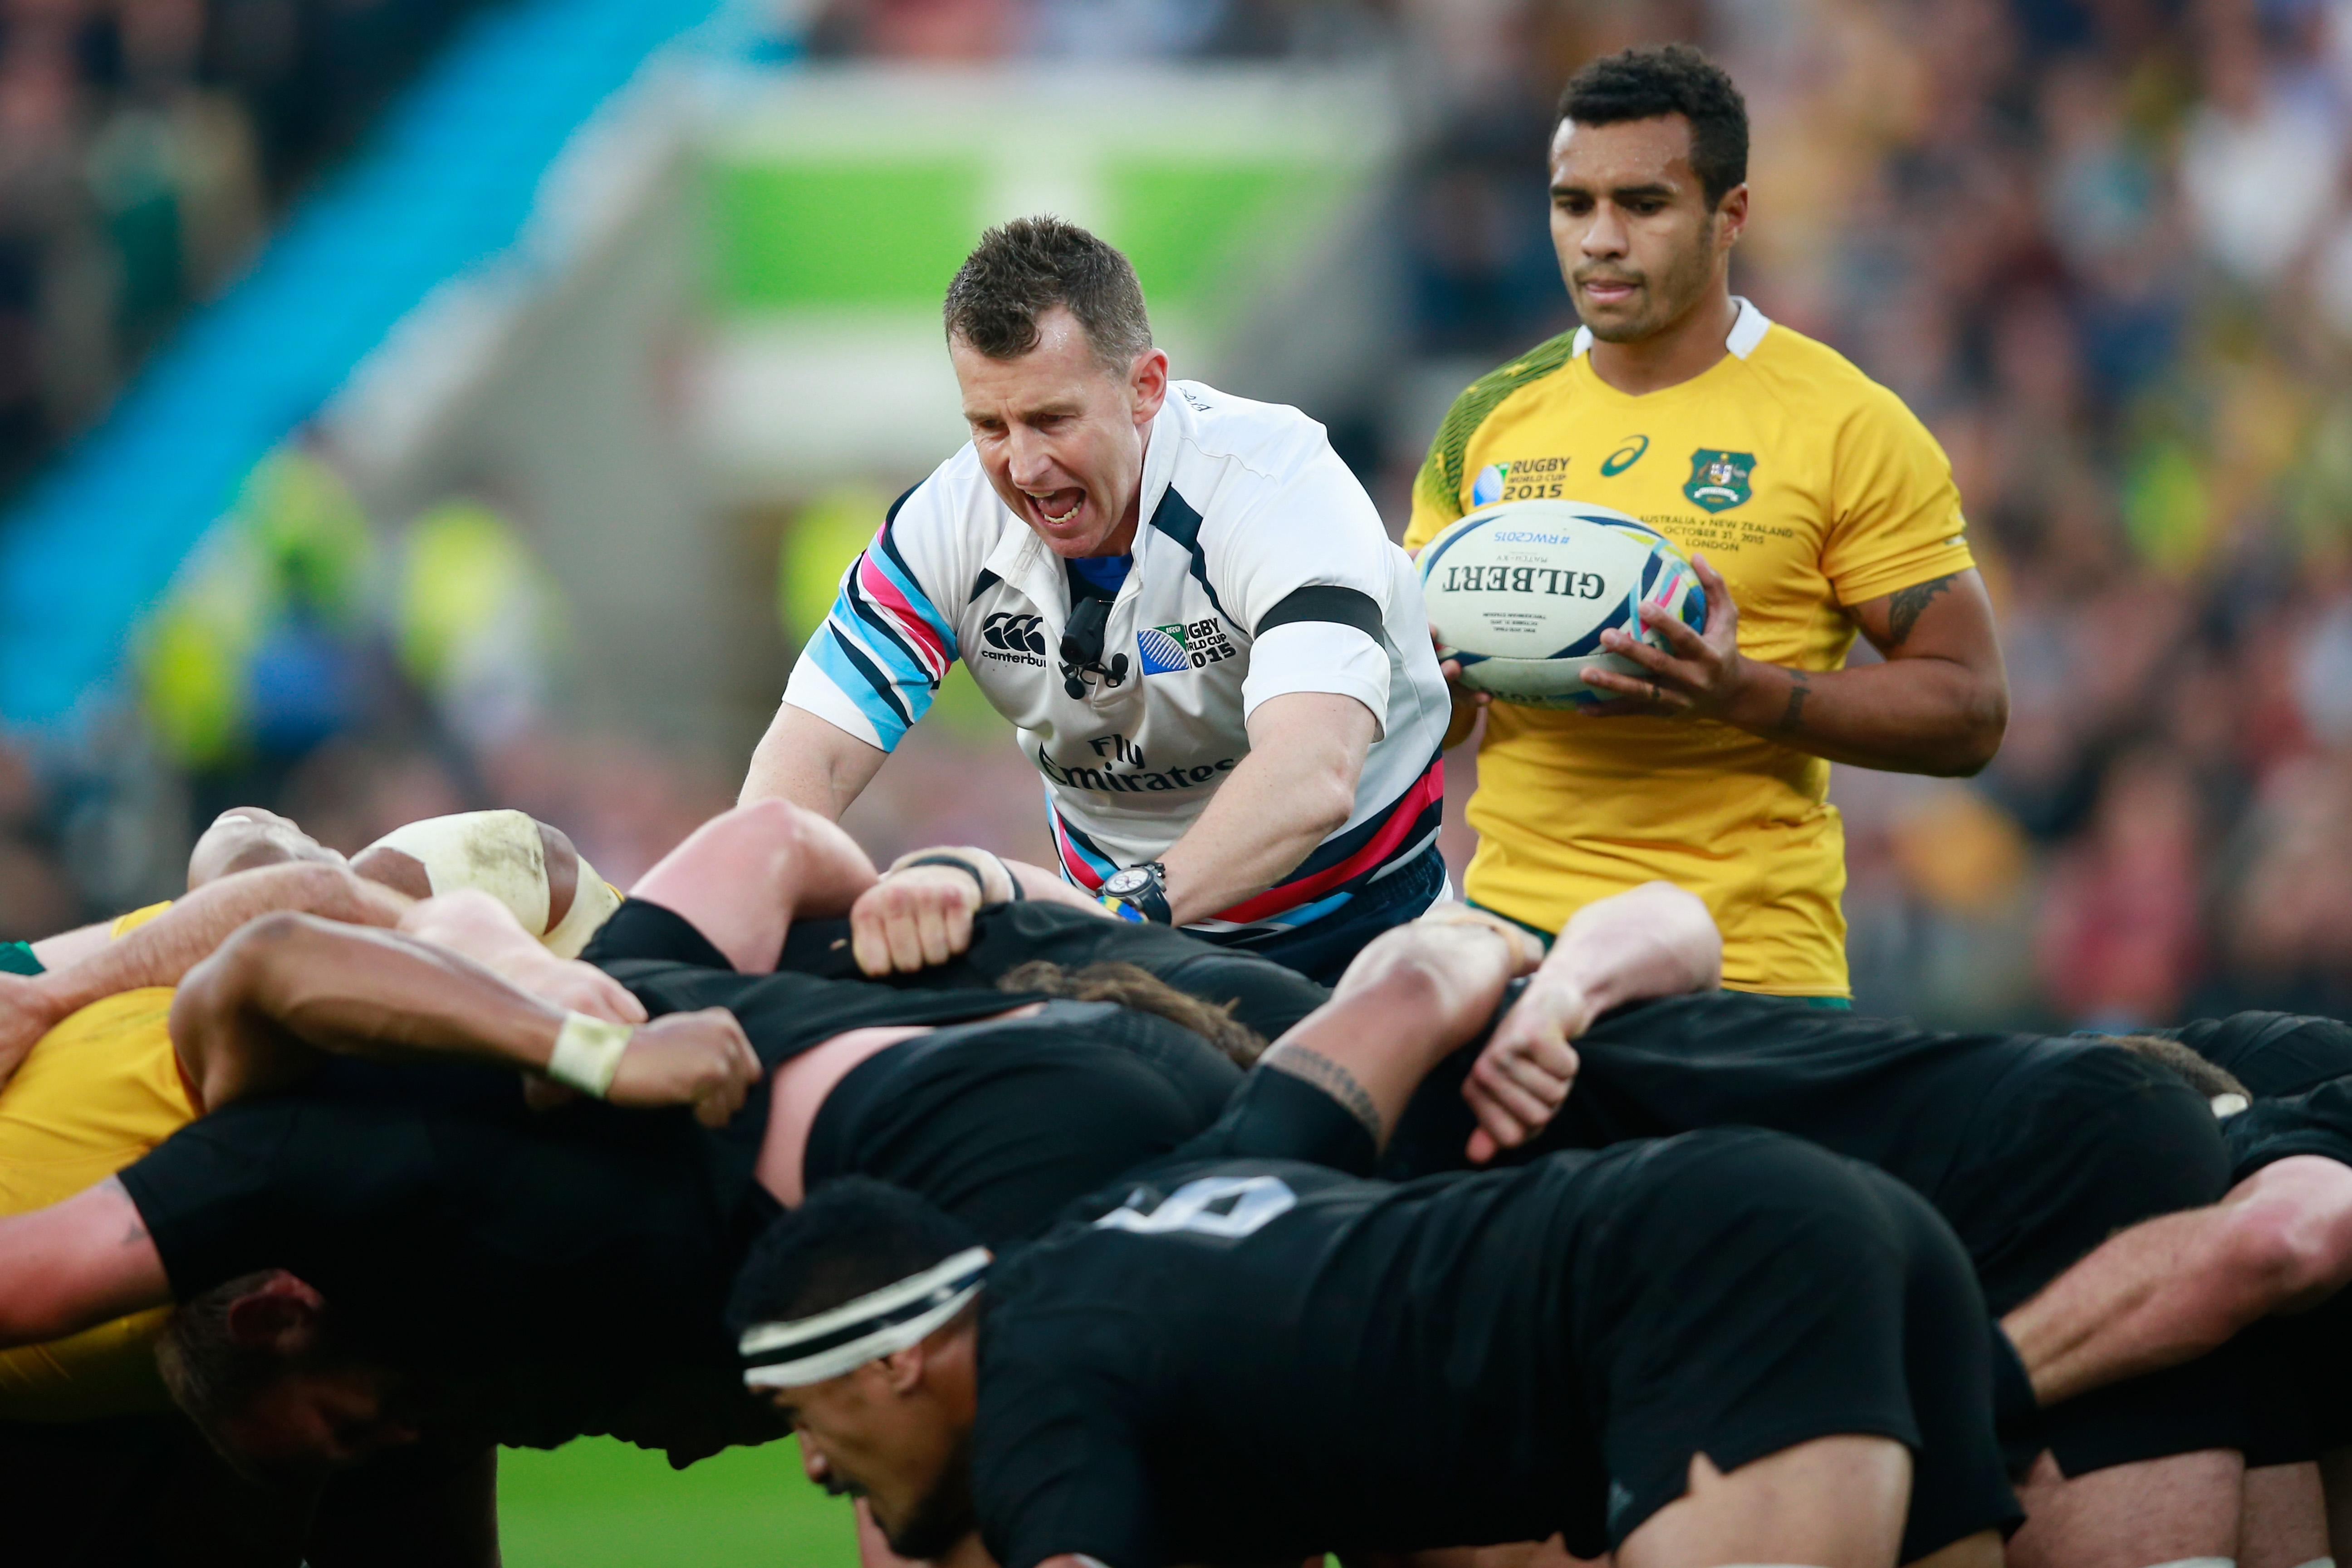 92f1ea0e0eb Match officials selected for RWC 2019  introducing Team 21 - Rugby World Cup  2019 | rugbyworldcup.com